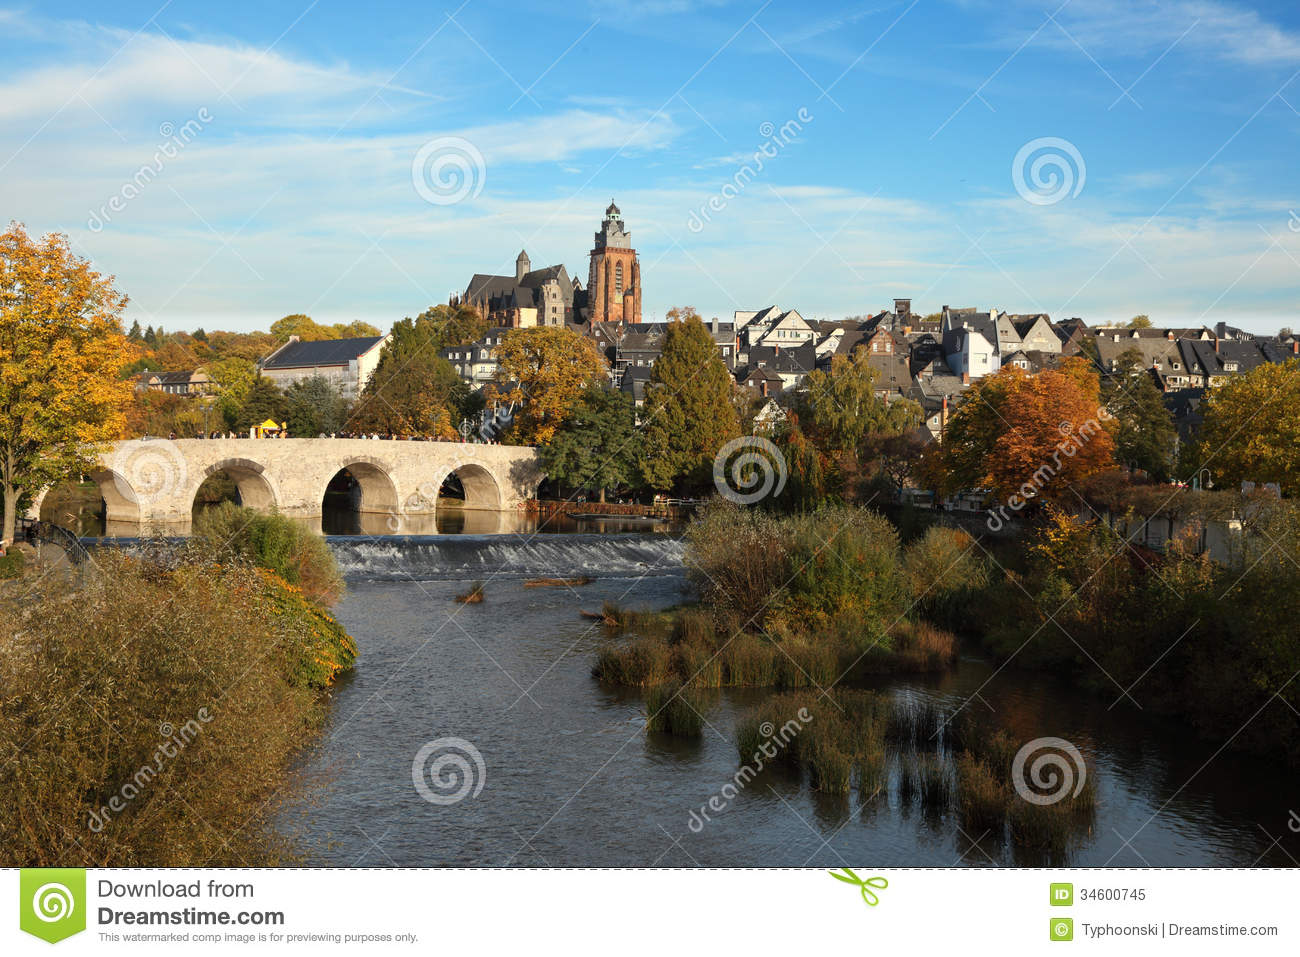 Lahn River In Wetzlar, Germany Royalty Free Stock Photo.